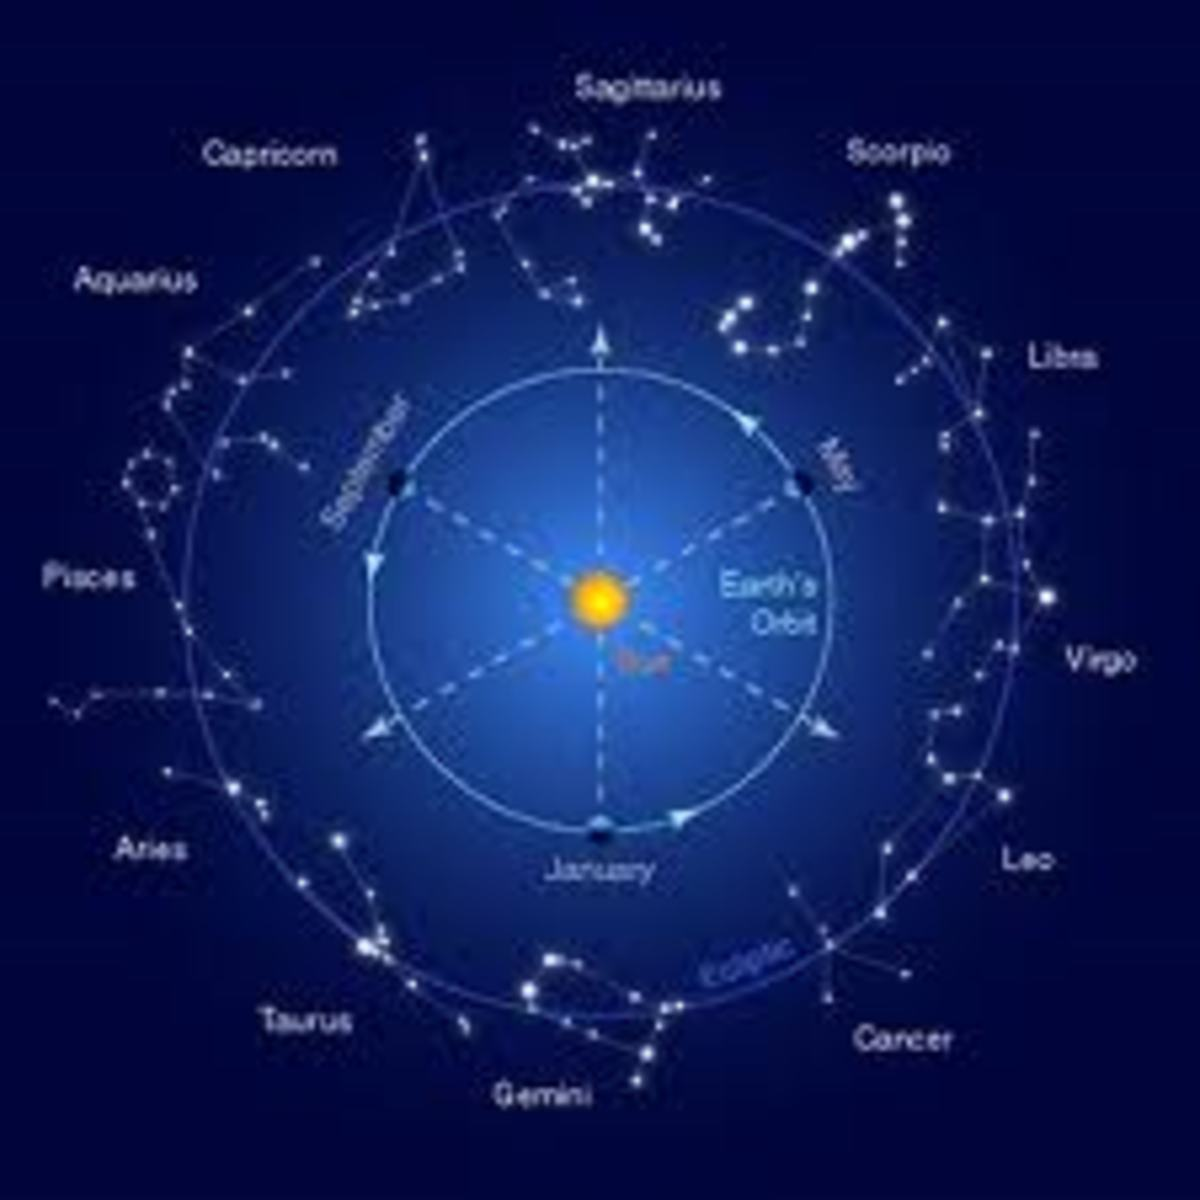 The sign of zodiac is that part of the universe where our solar system belongs including our beautiful planet earth, and this is where we search for God and the meaning of life.